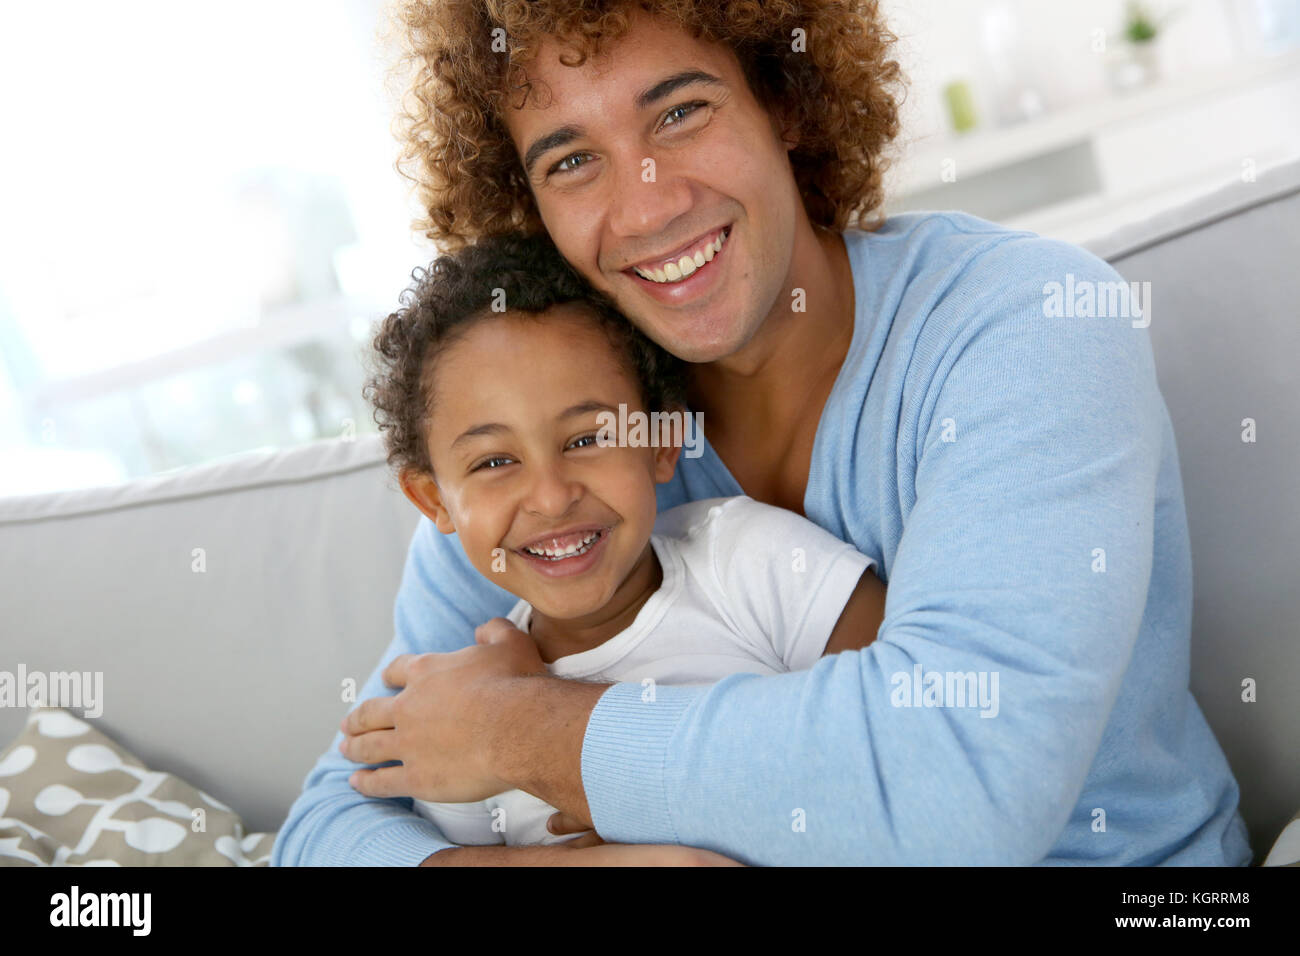 Father and child having fun together at home - Stock Image